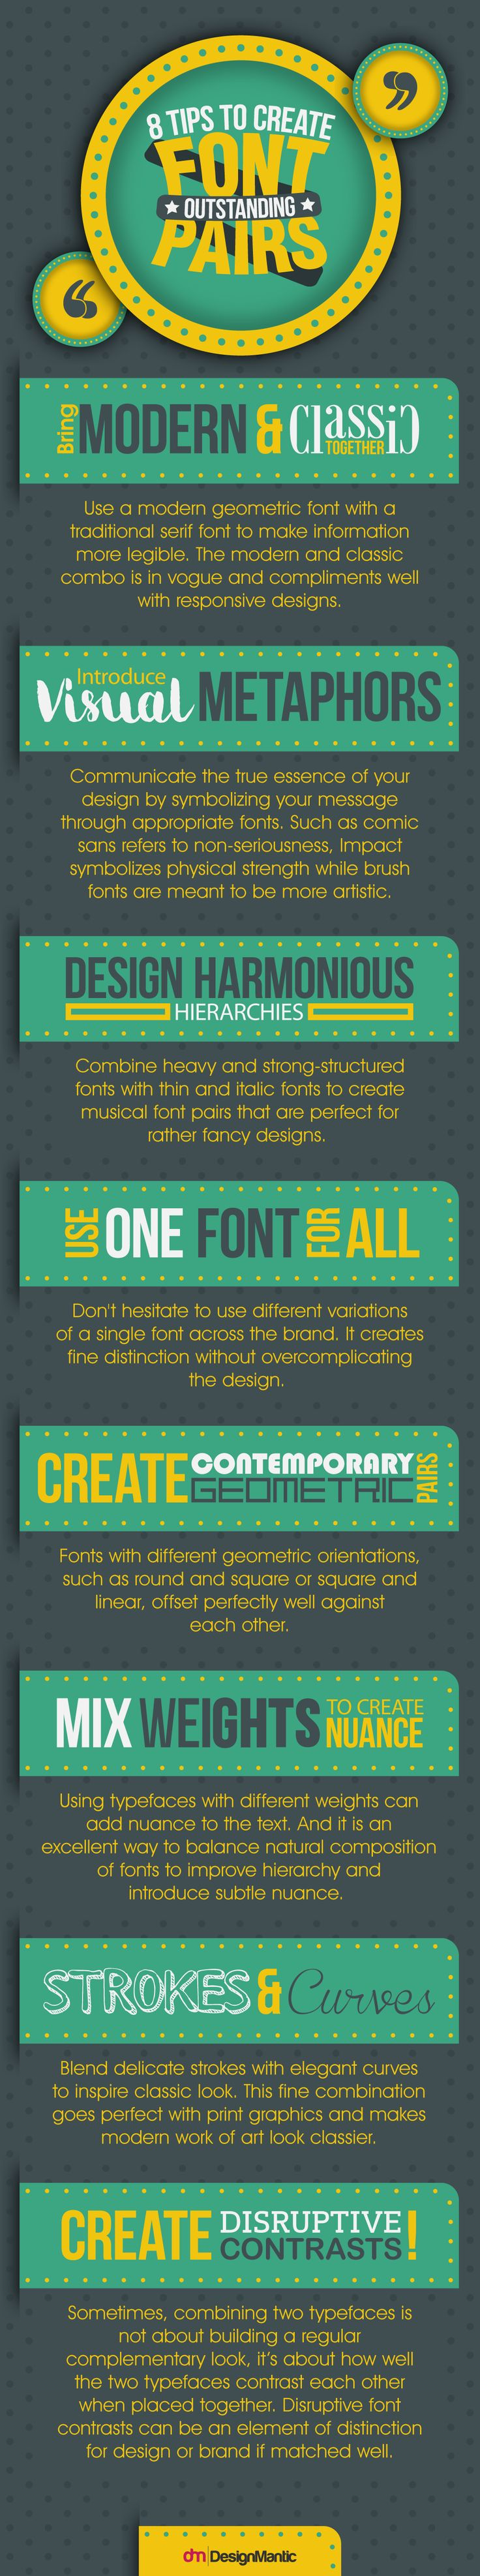 8 Tips to Create Outstanding Font Pairs #Infographic #Design #Fonts